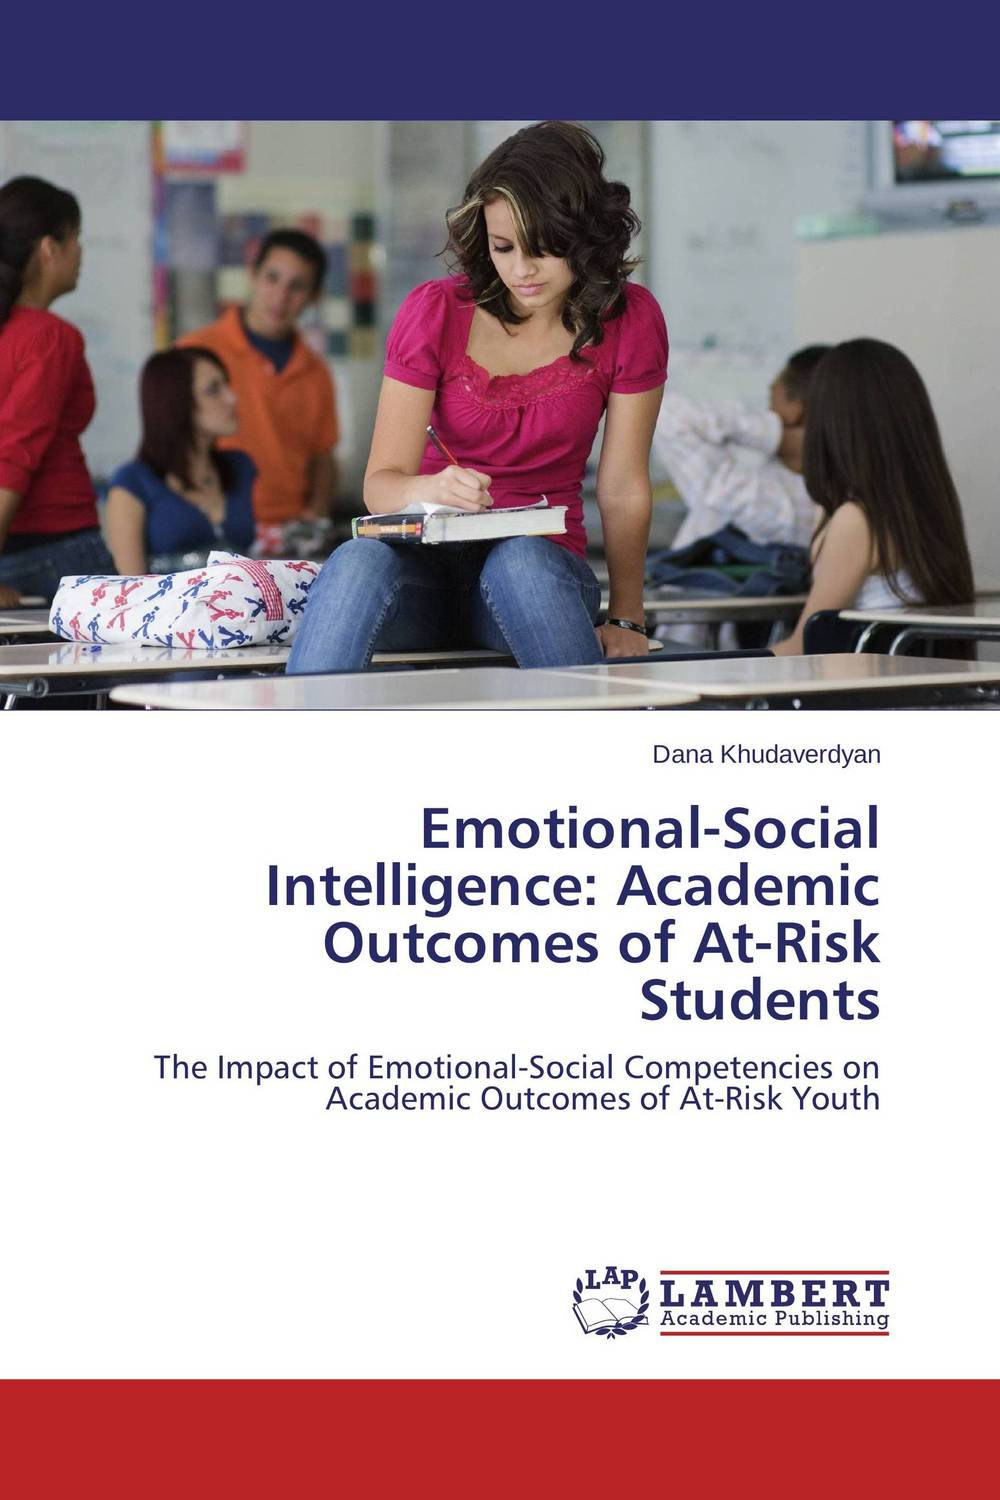 Emotional-Social Intelligence: Academic Outcomes of At-Risk Students social distortion social distortion somewhere between heaven and hell lp